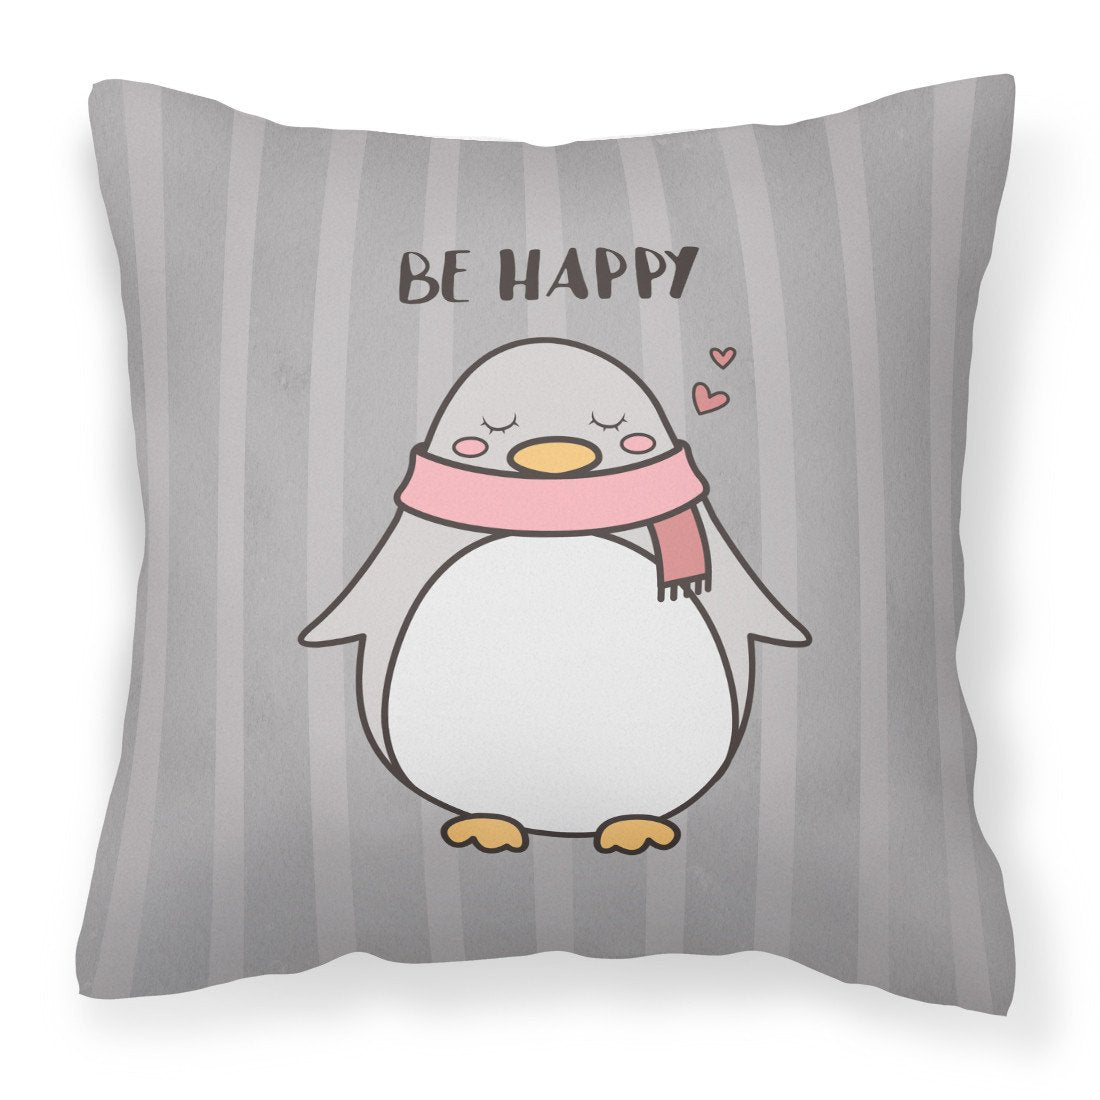 Nursery Be Happy Penquin Fabric Decorative Pillow BB7478PW1818 by Caroline's Treasures